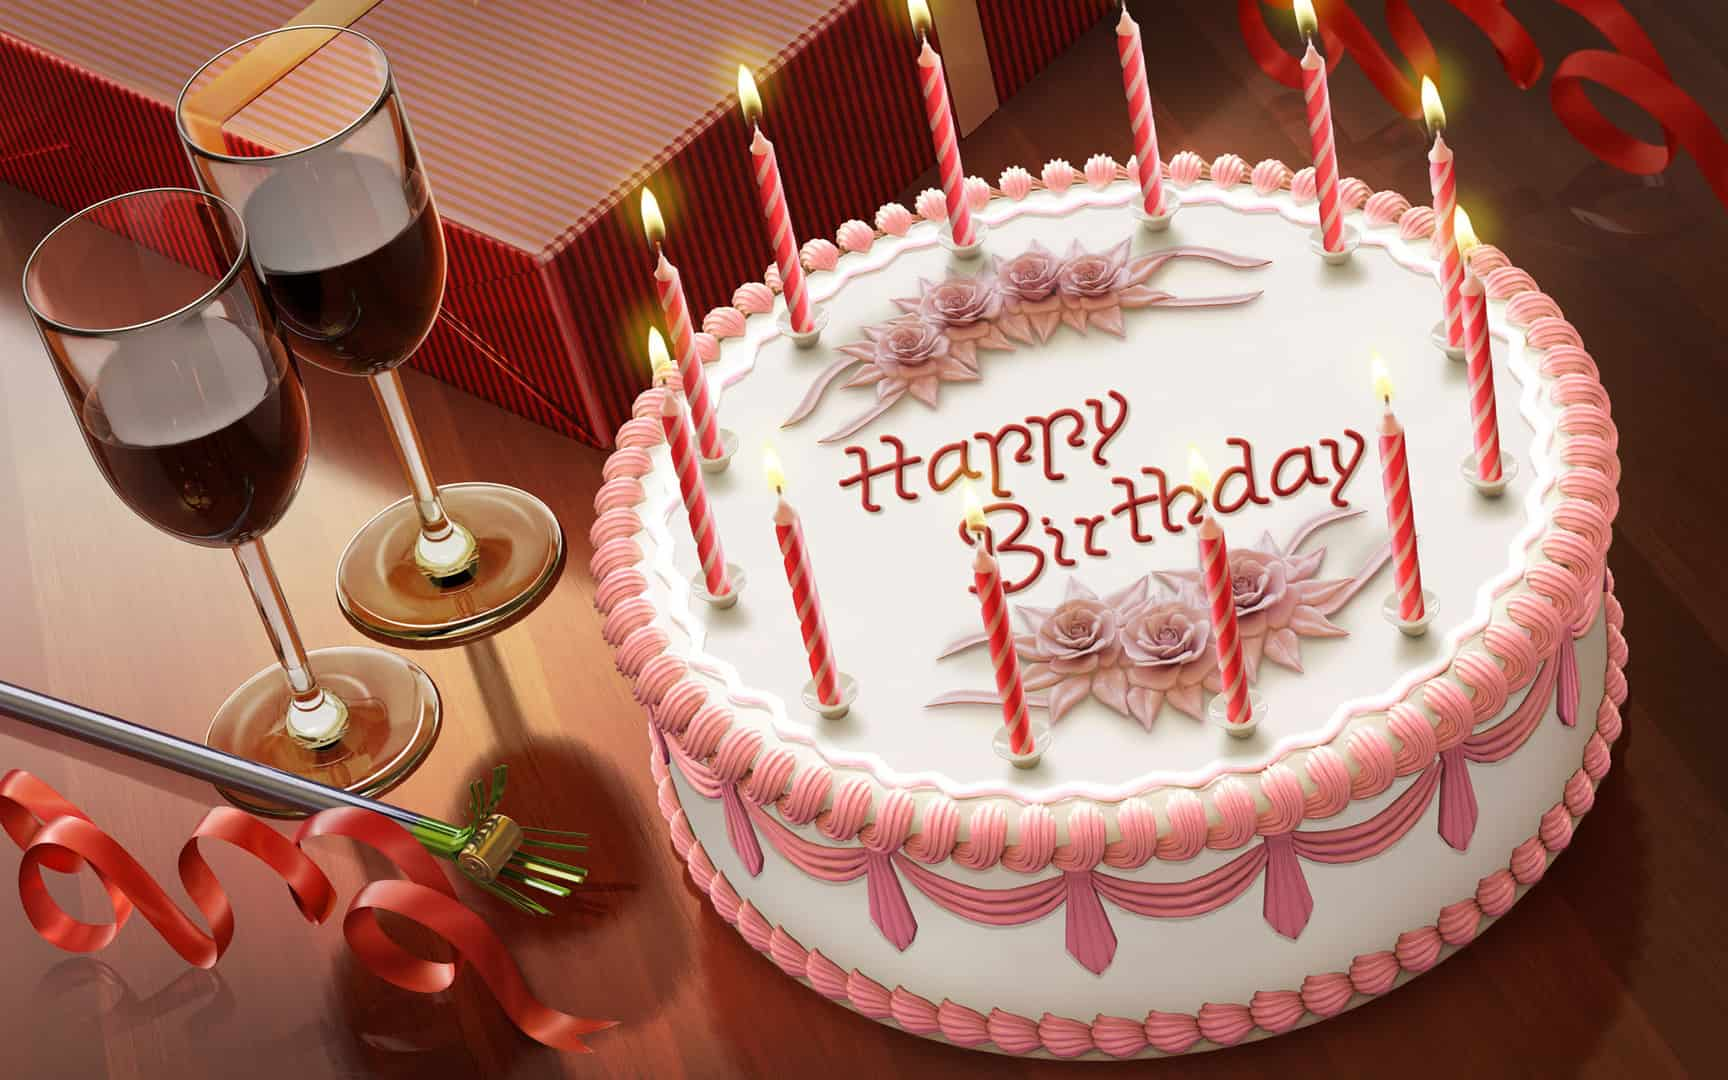 Exclusive Happy Birthday Wishes Image Happy Birthday To You